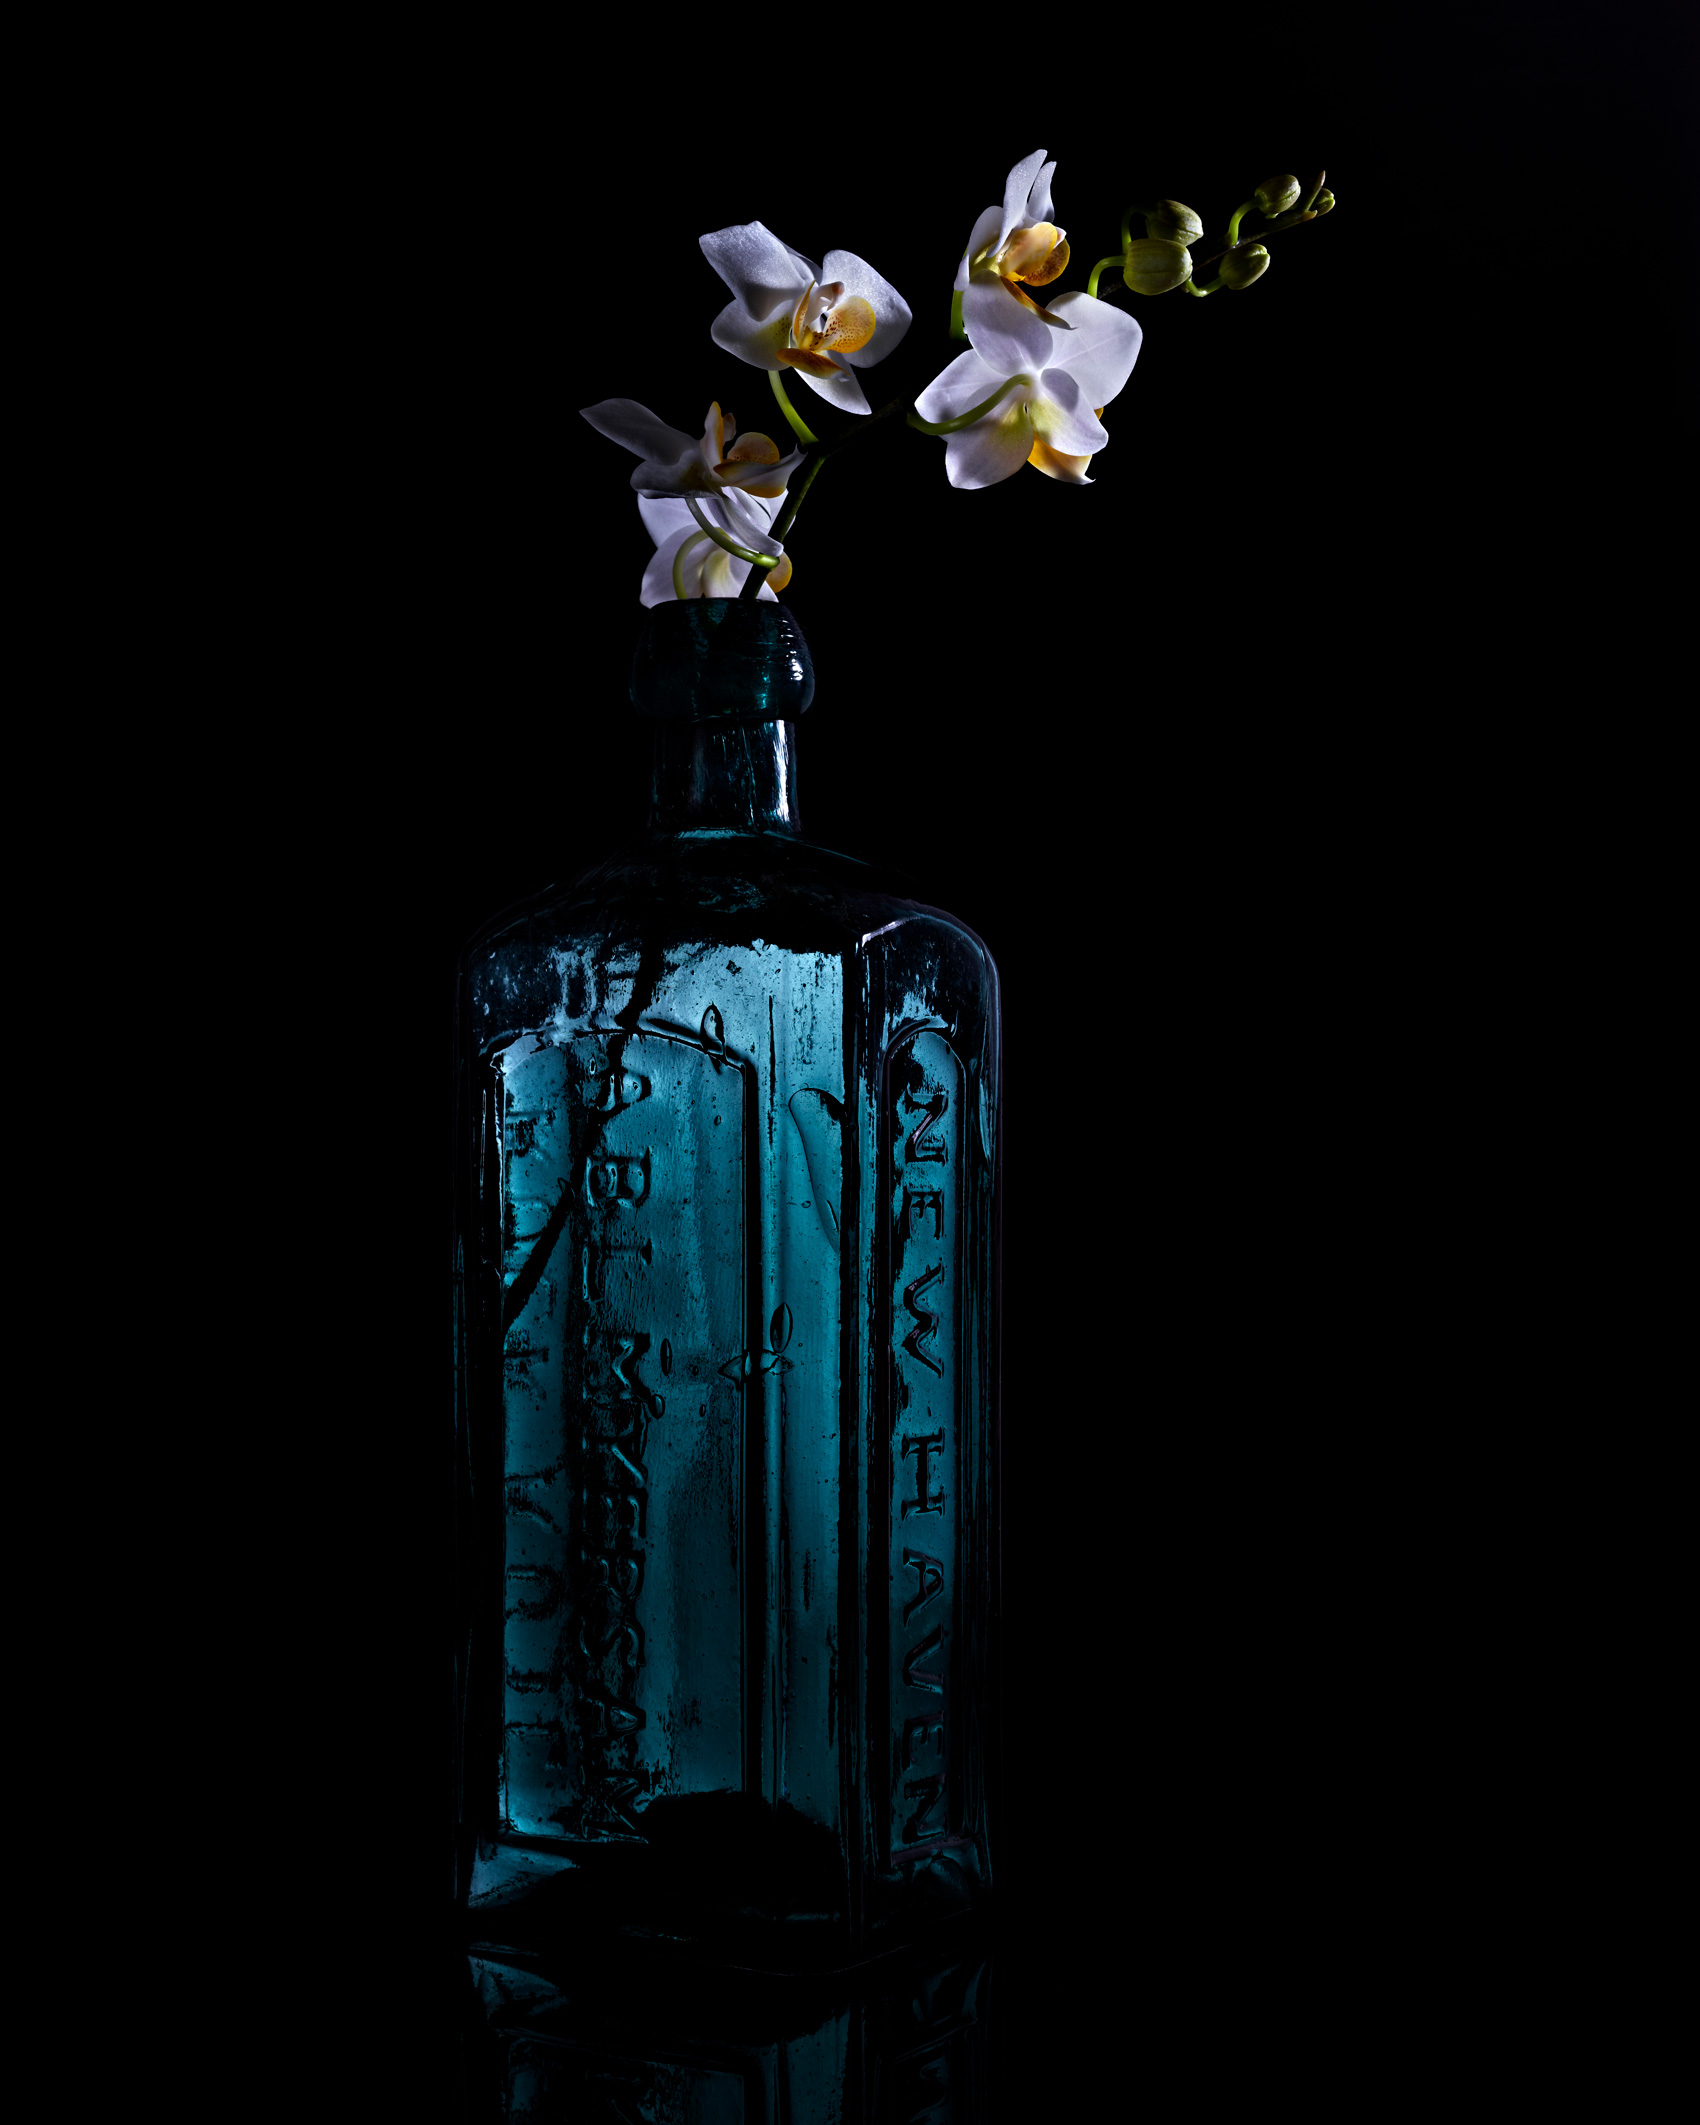 Flowers in a Blue Bottle